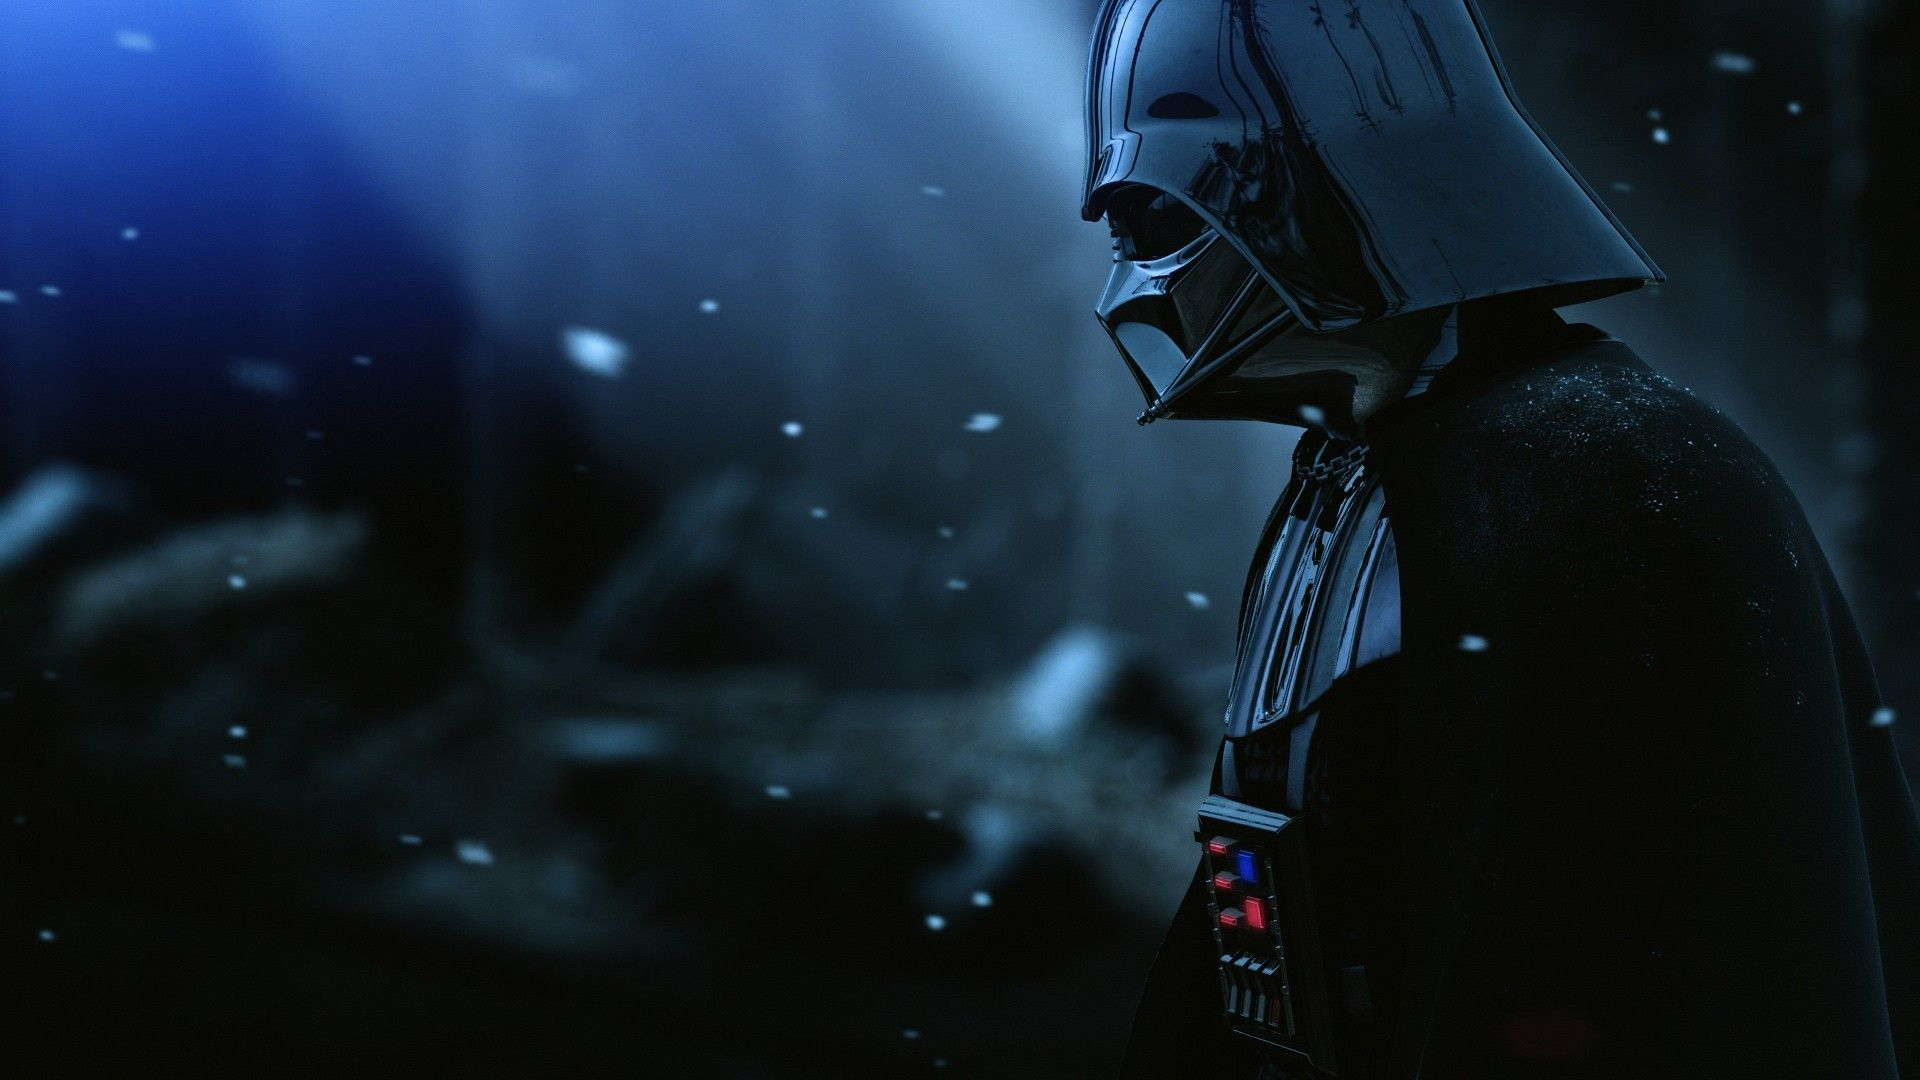 Star Wars Wallpaper Darth Vader